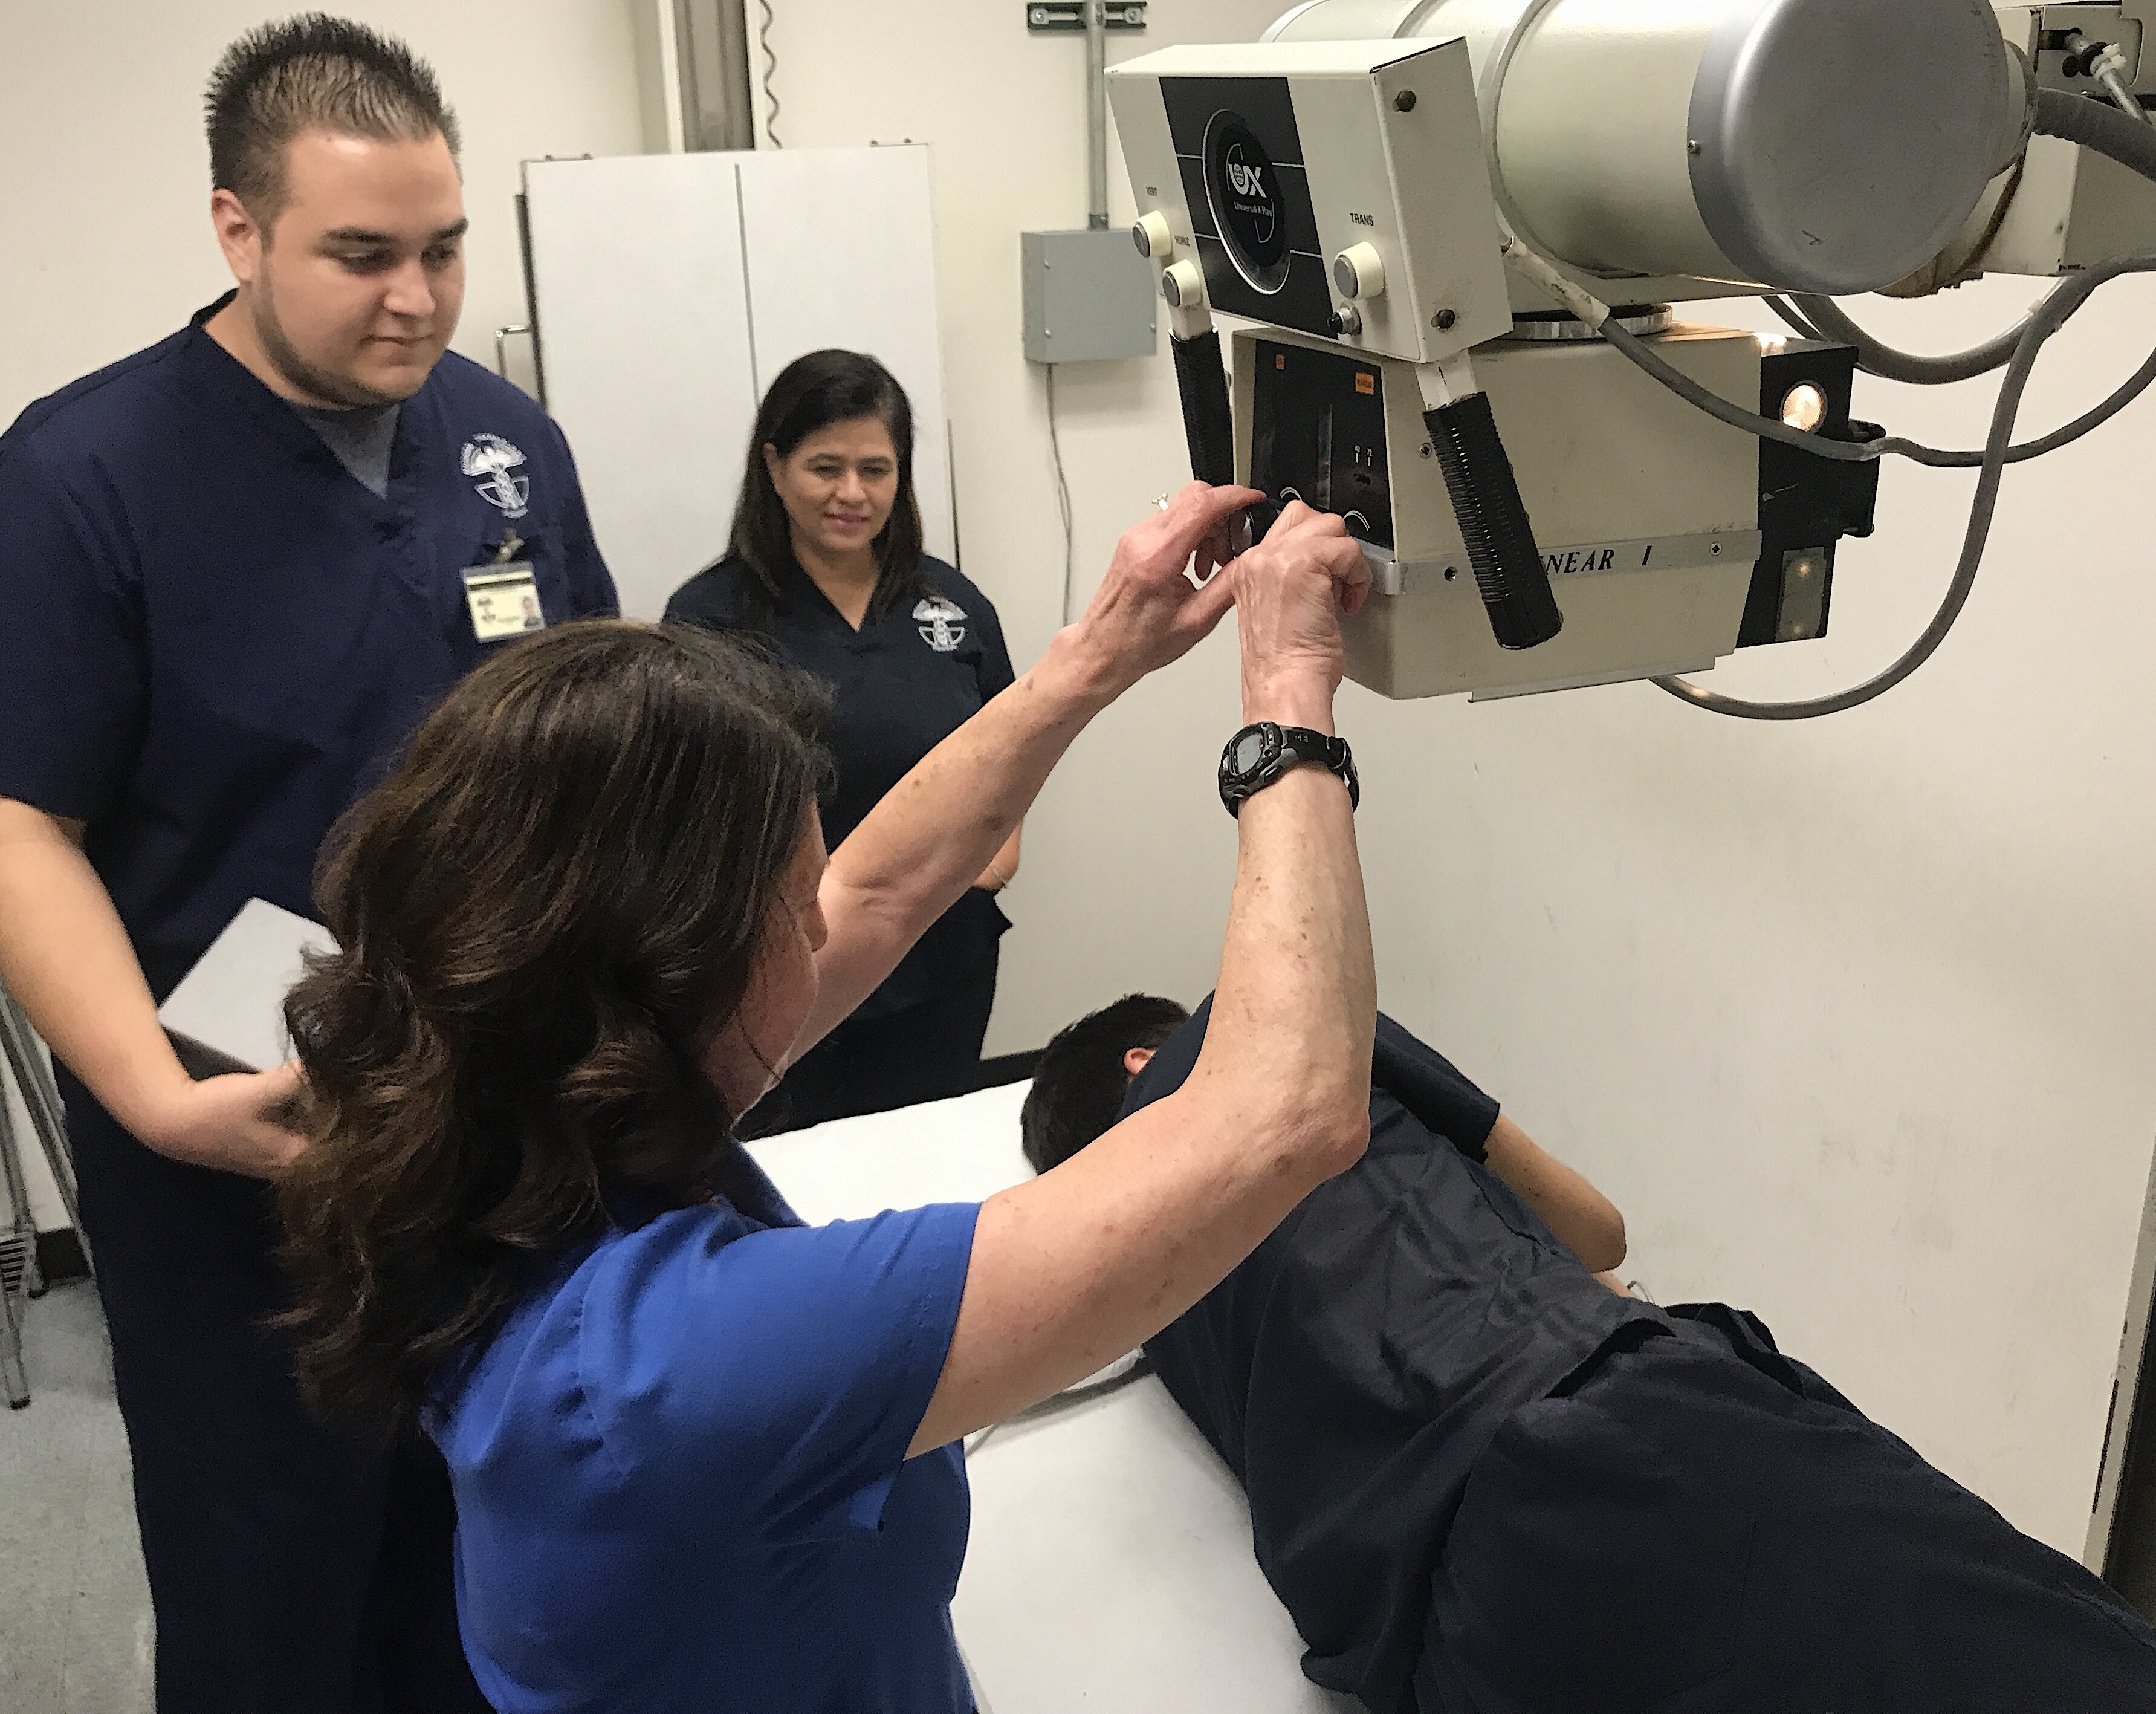 Start Now To Become An X Ray Technician In Less Than A Year